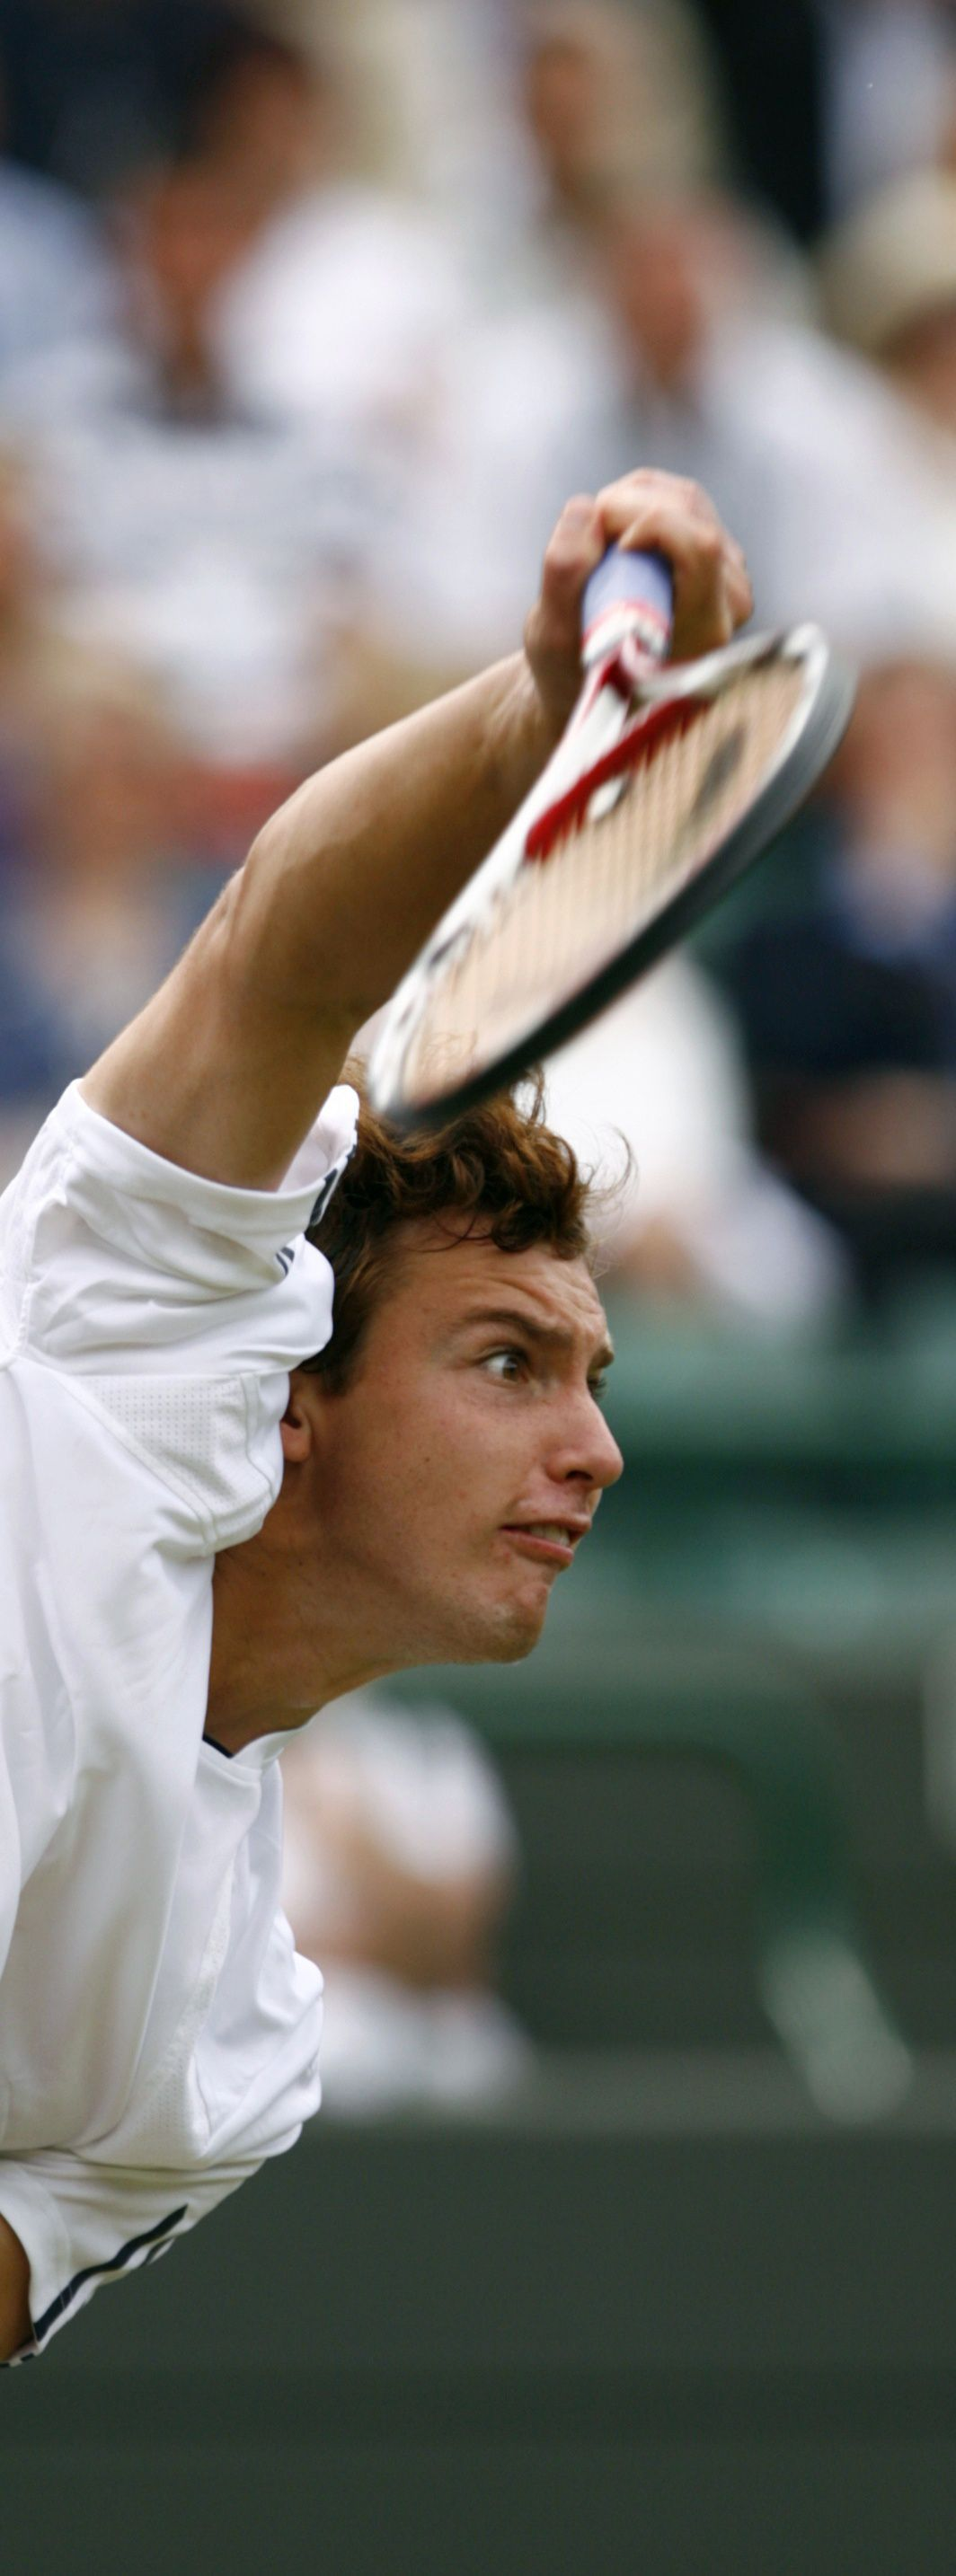 Ernests Gulbis serveert. Hij verraste Nadal met zijn spel. Foto Reuters Ernests Gulbis of Latvia serves to Rafael Nadal of Spain during their match at the Wimbledon tennis championships in London June 26, 2008. REUTERS/Kevin Lamarque (BRITAIN)